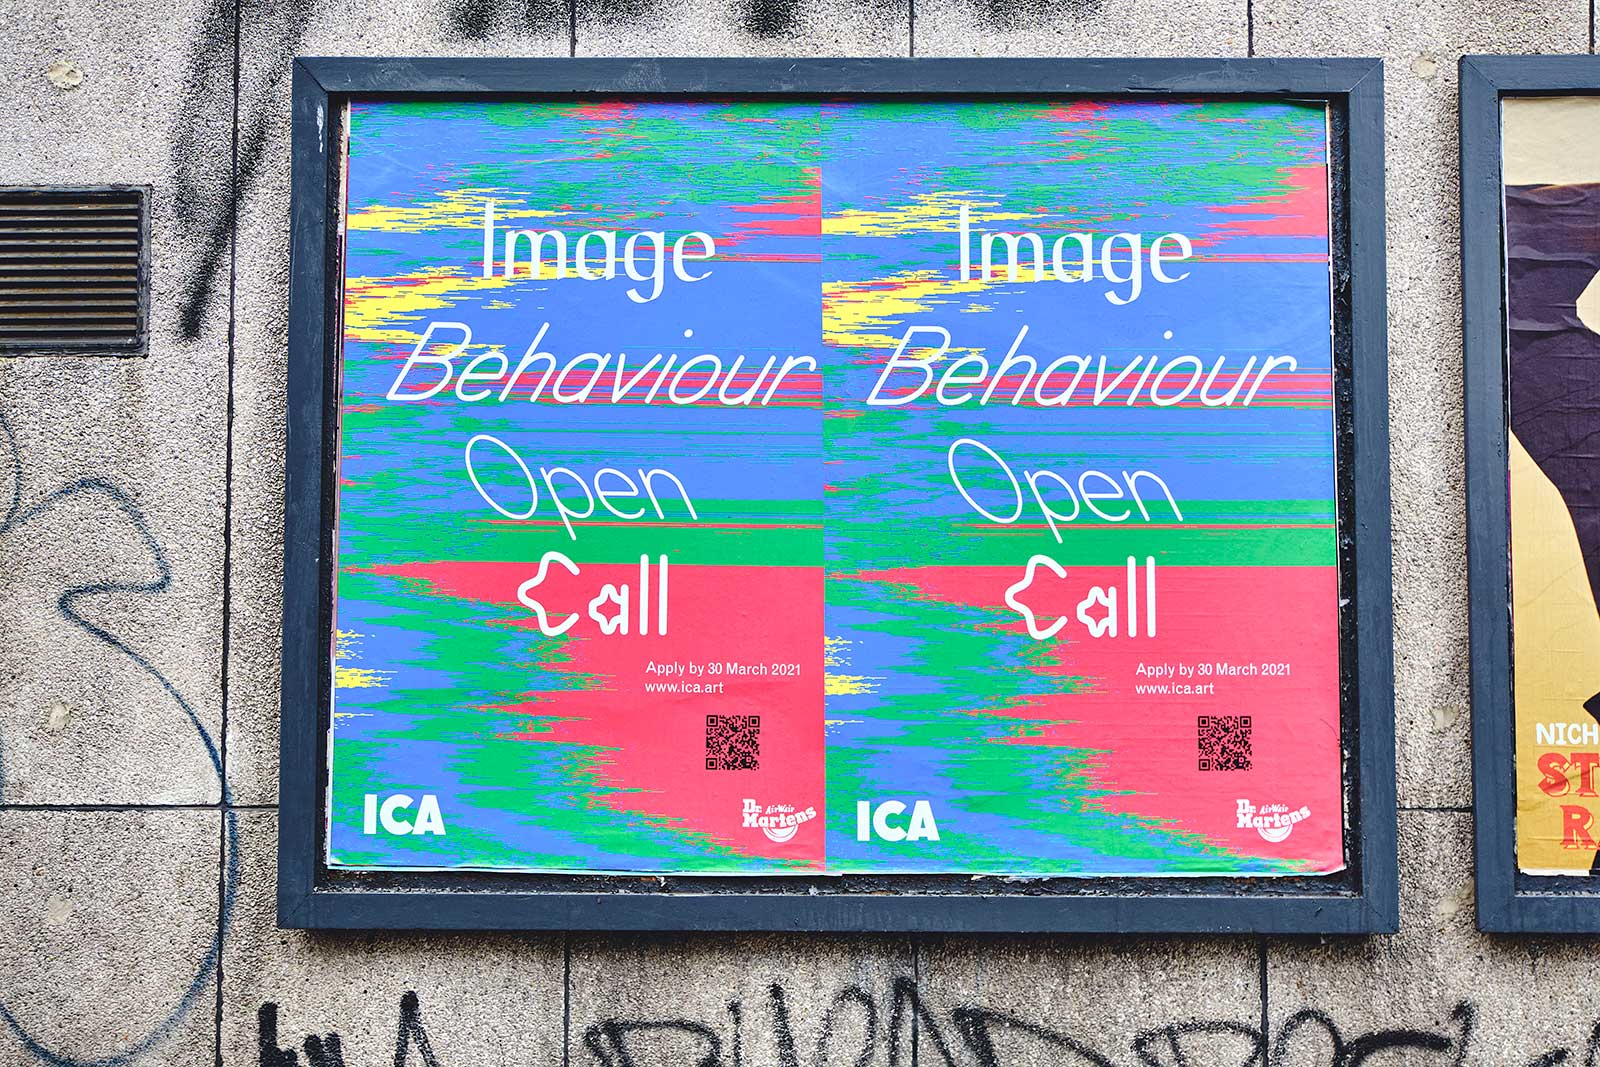 The ICA and Dr. Martens team up for this year's edition of Image Behaviour